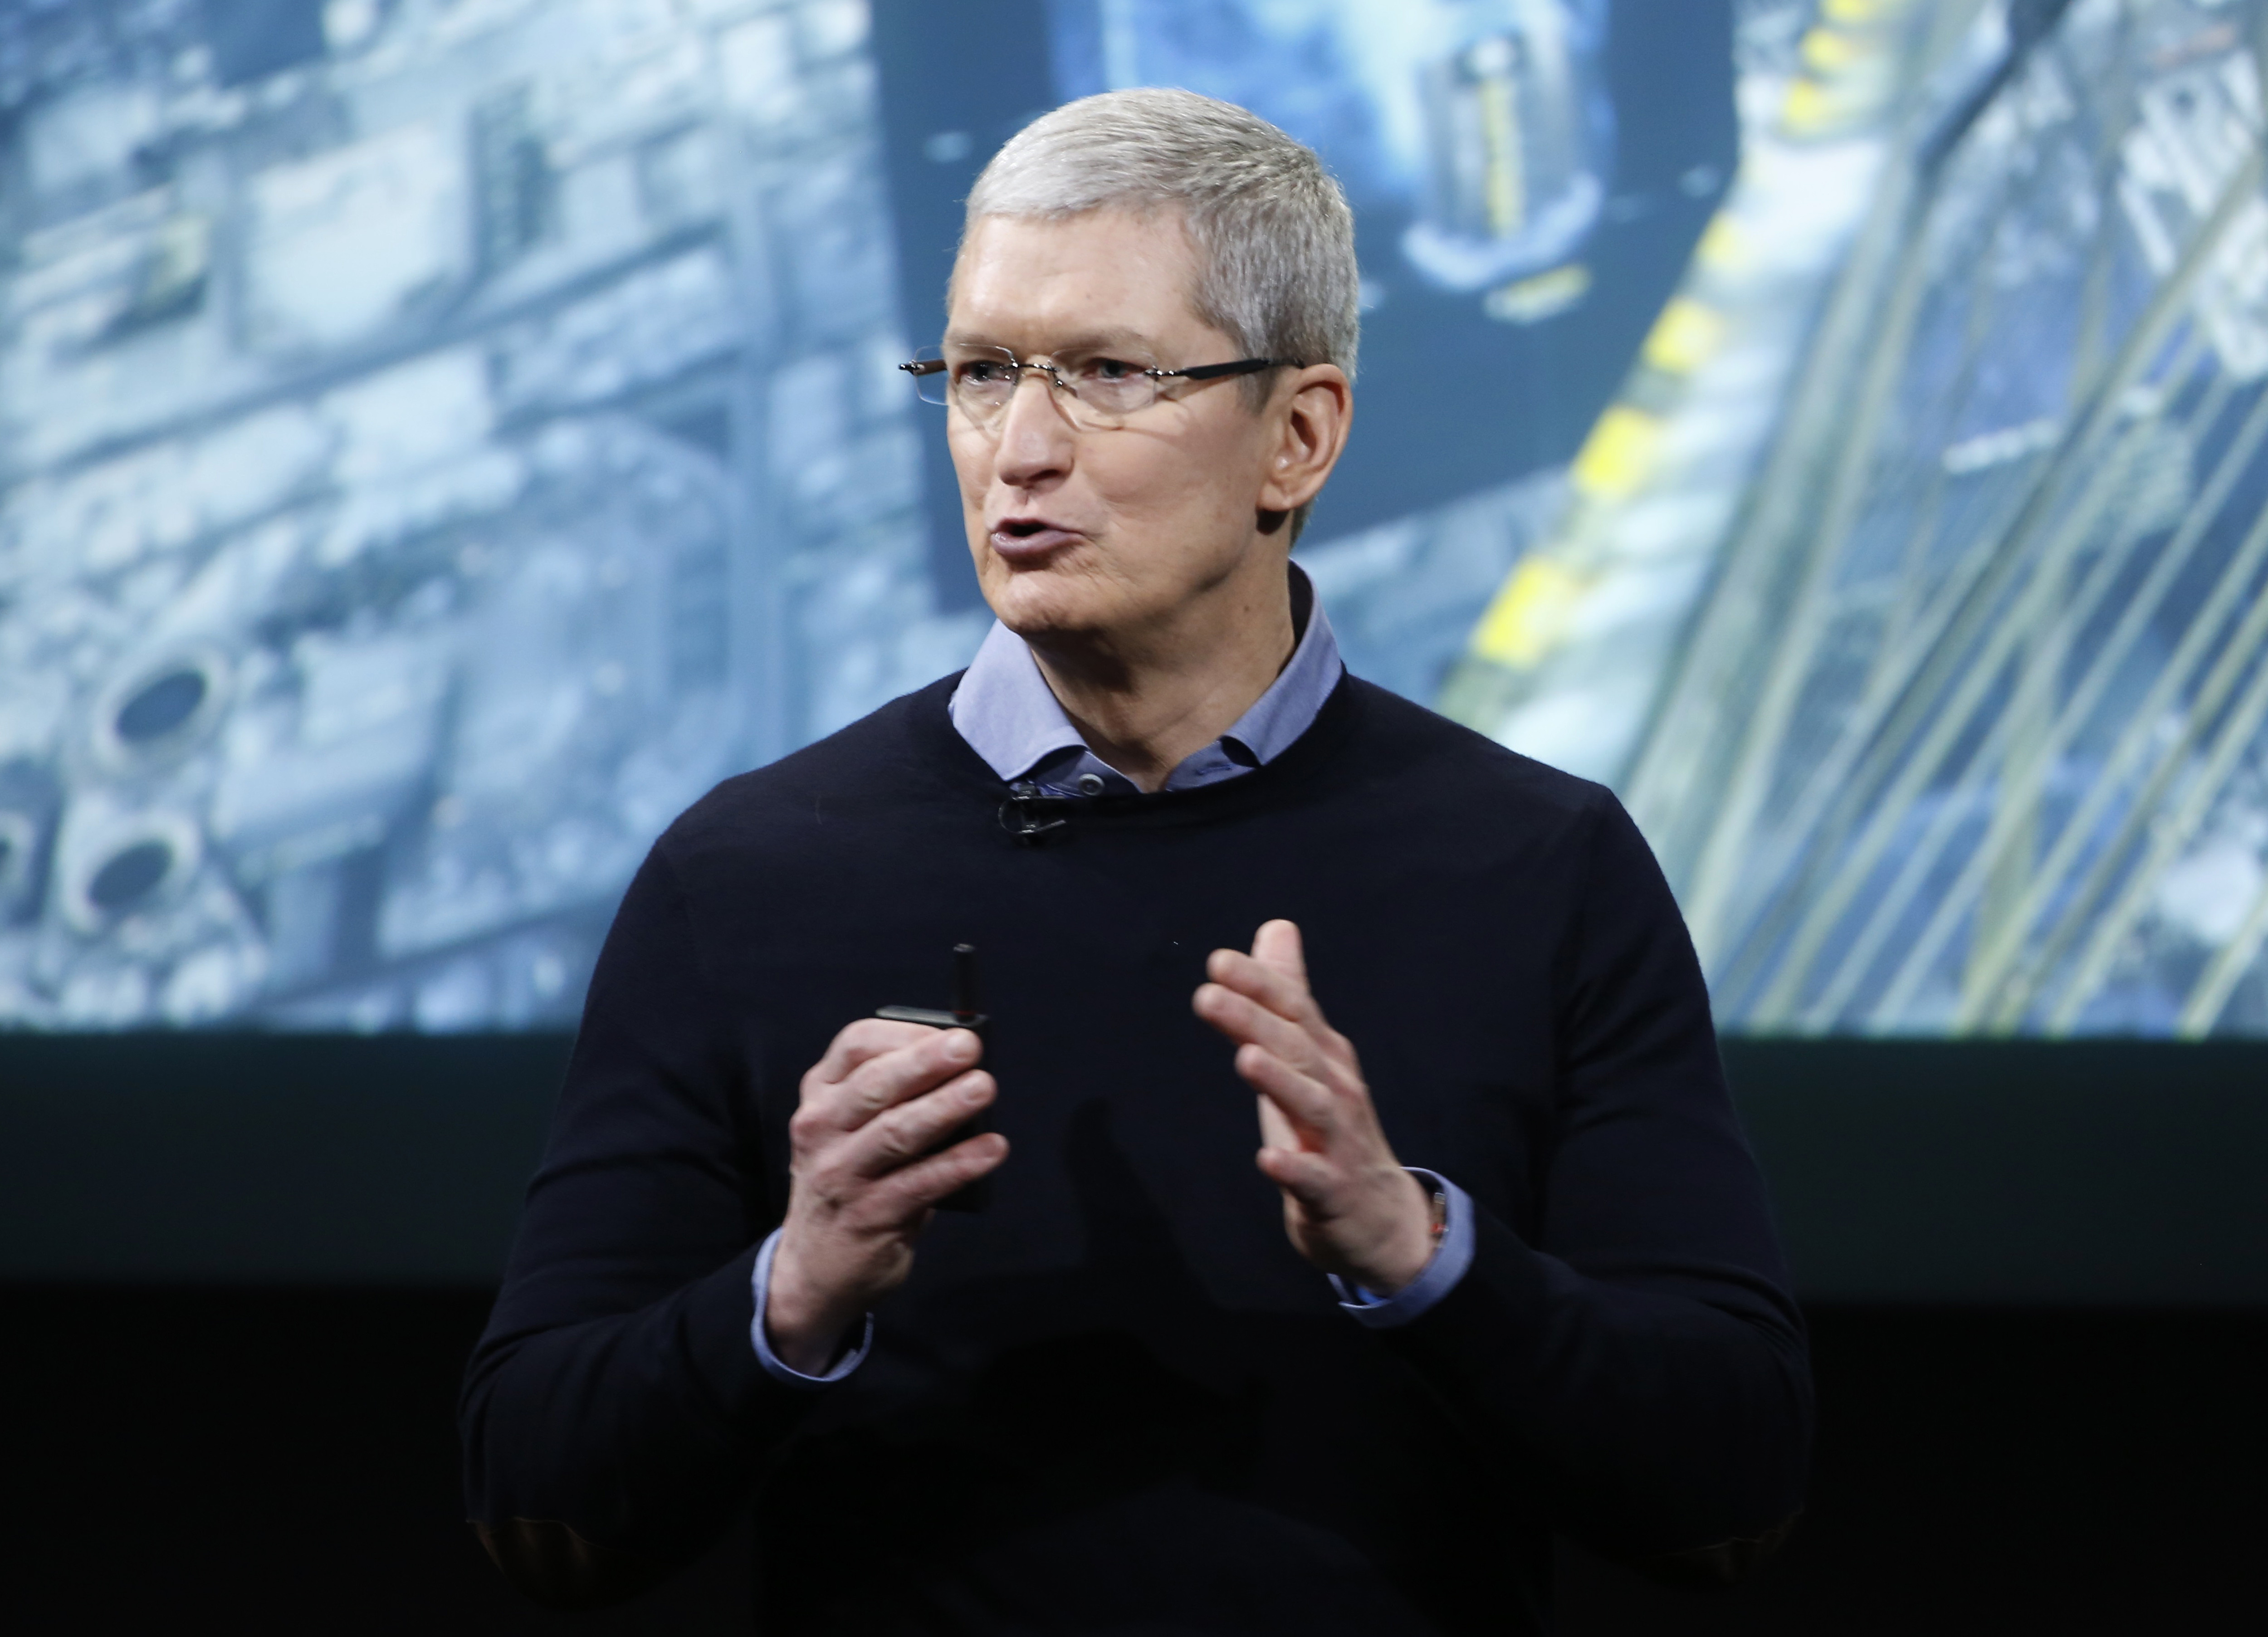 Apple may get 2-3 years' breather on sourcing norm